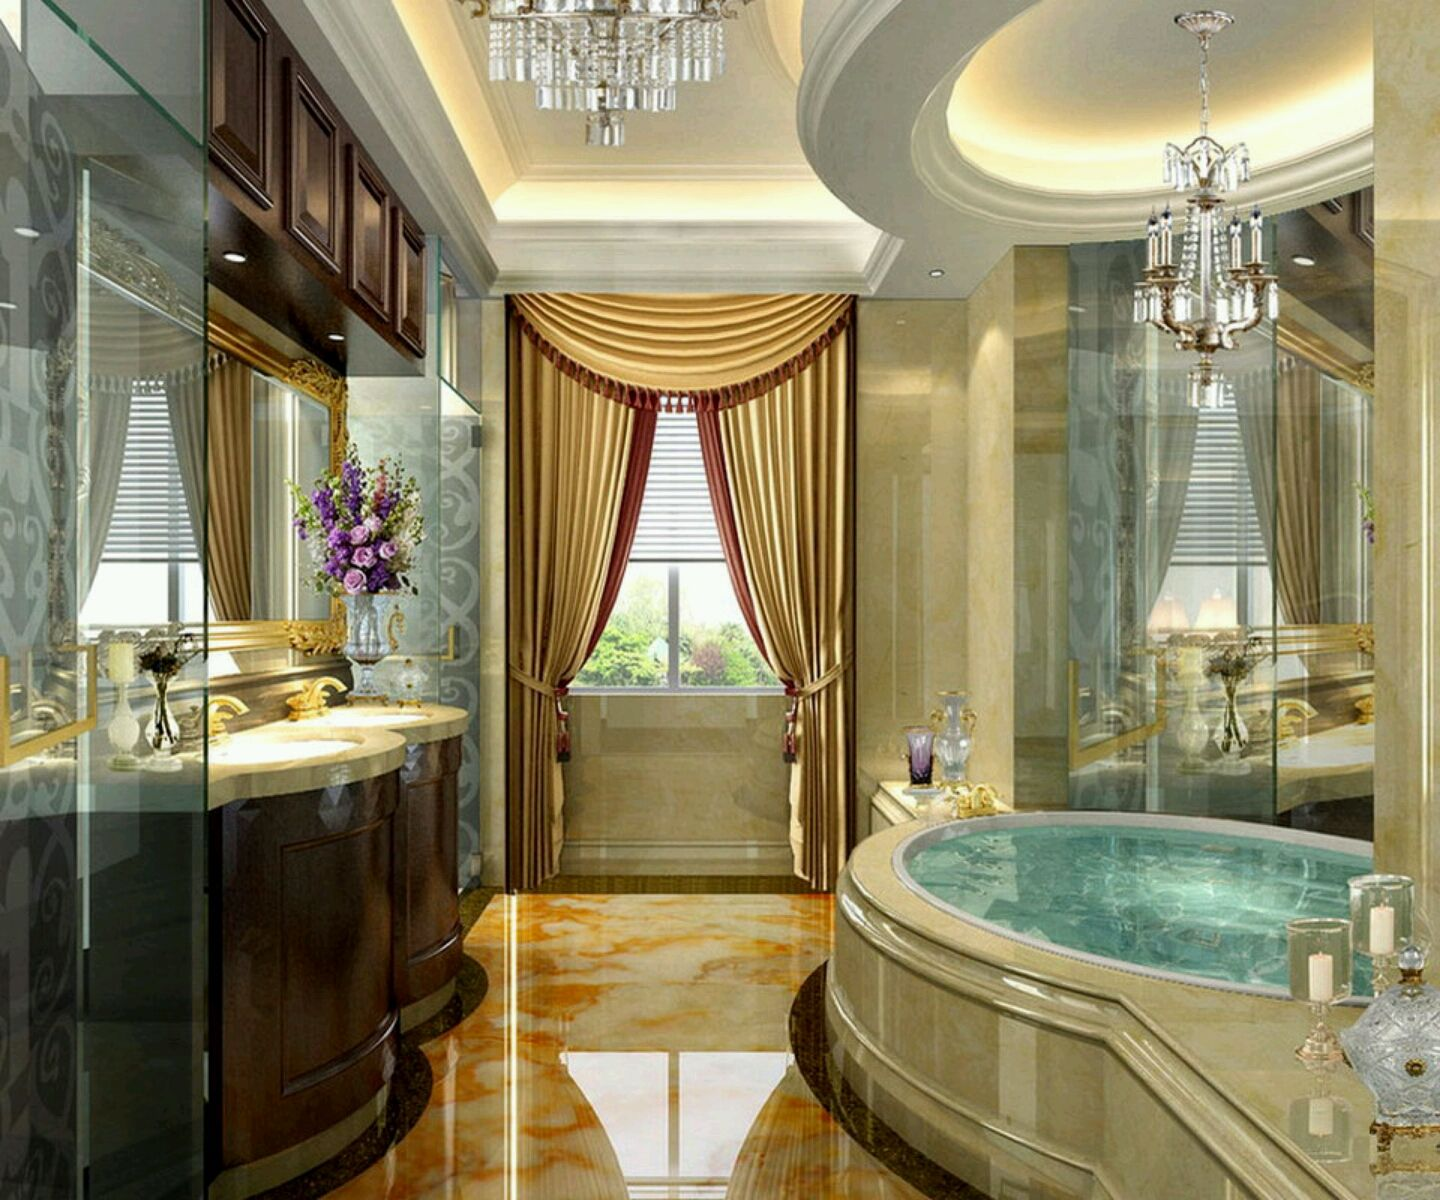 cream and brown bathroom accessories. Imposing Luxury Modern Bathroom Ideas Photo Home Decor 2012 December Cool 13 Designs On Latest